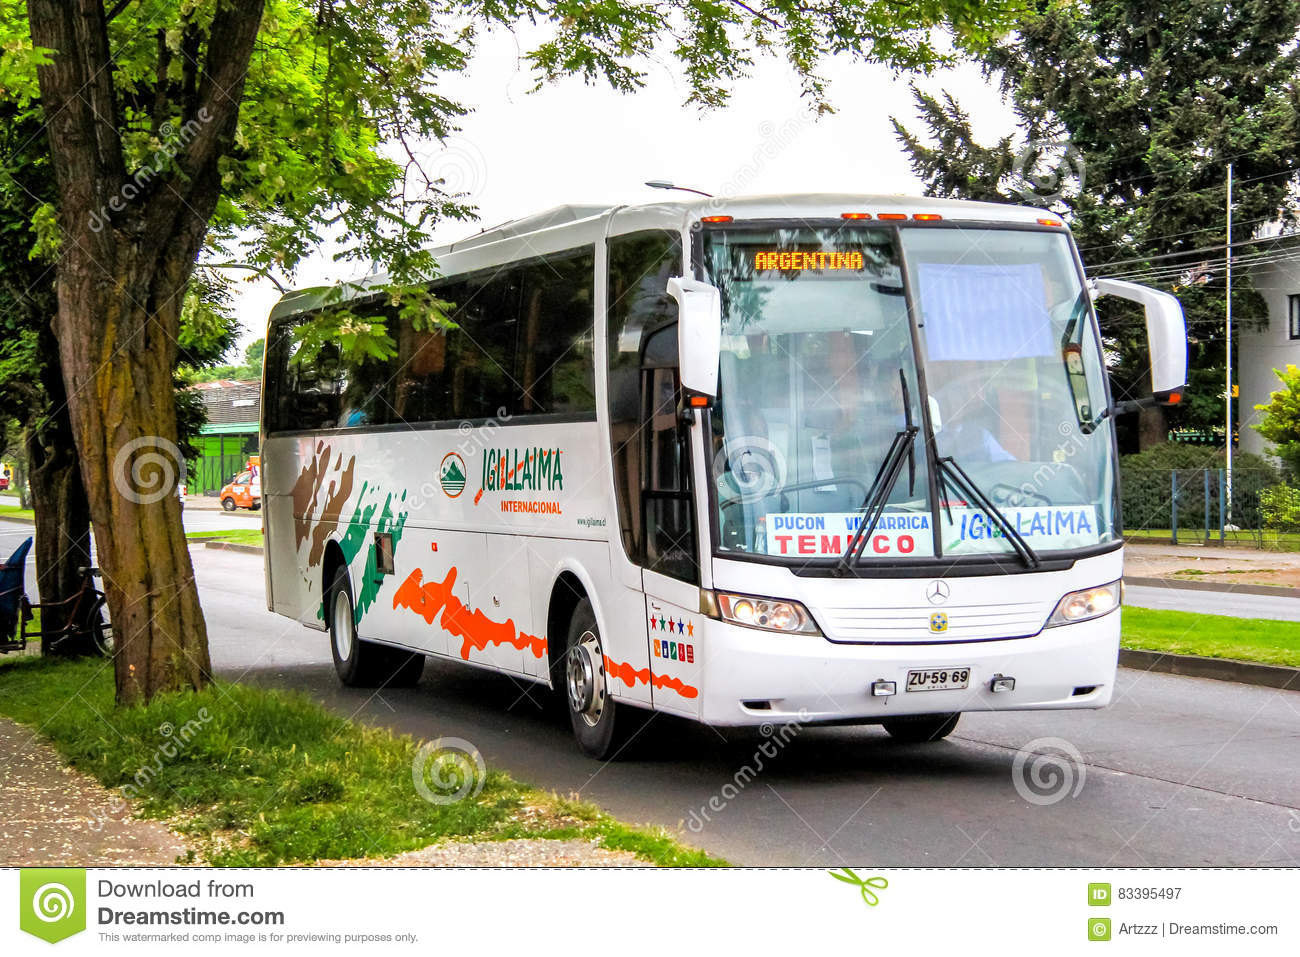 Interlokale bus Busscar